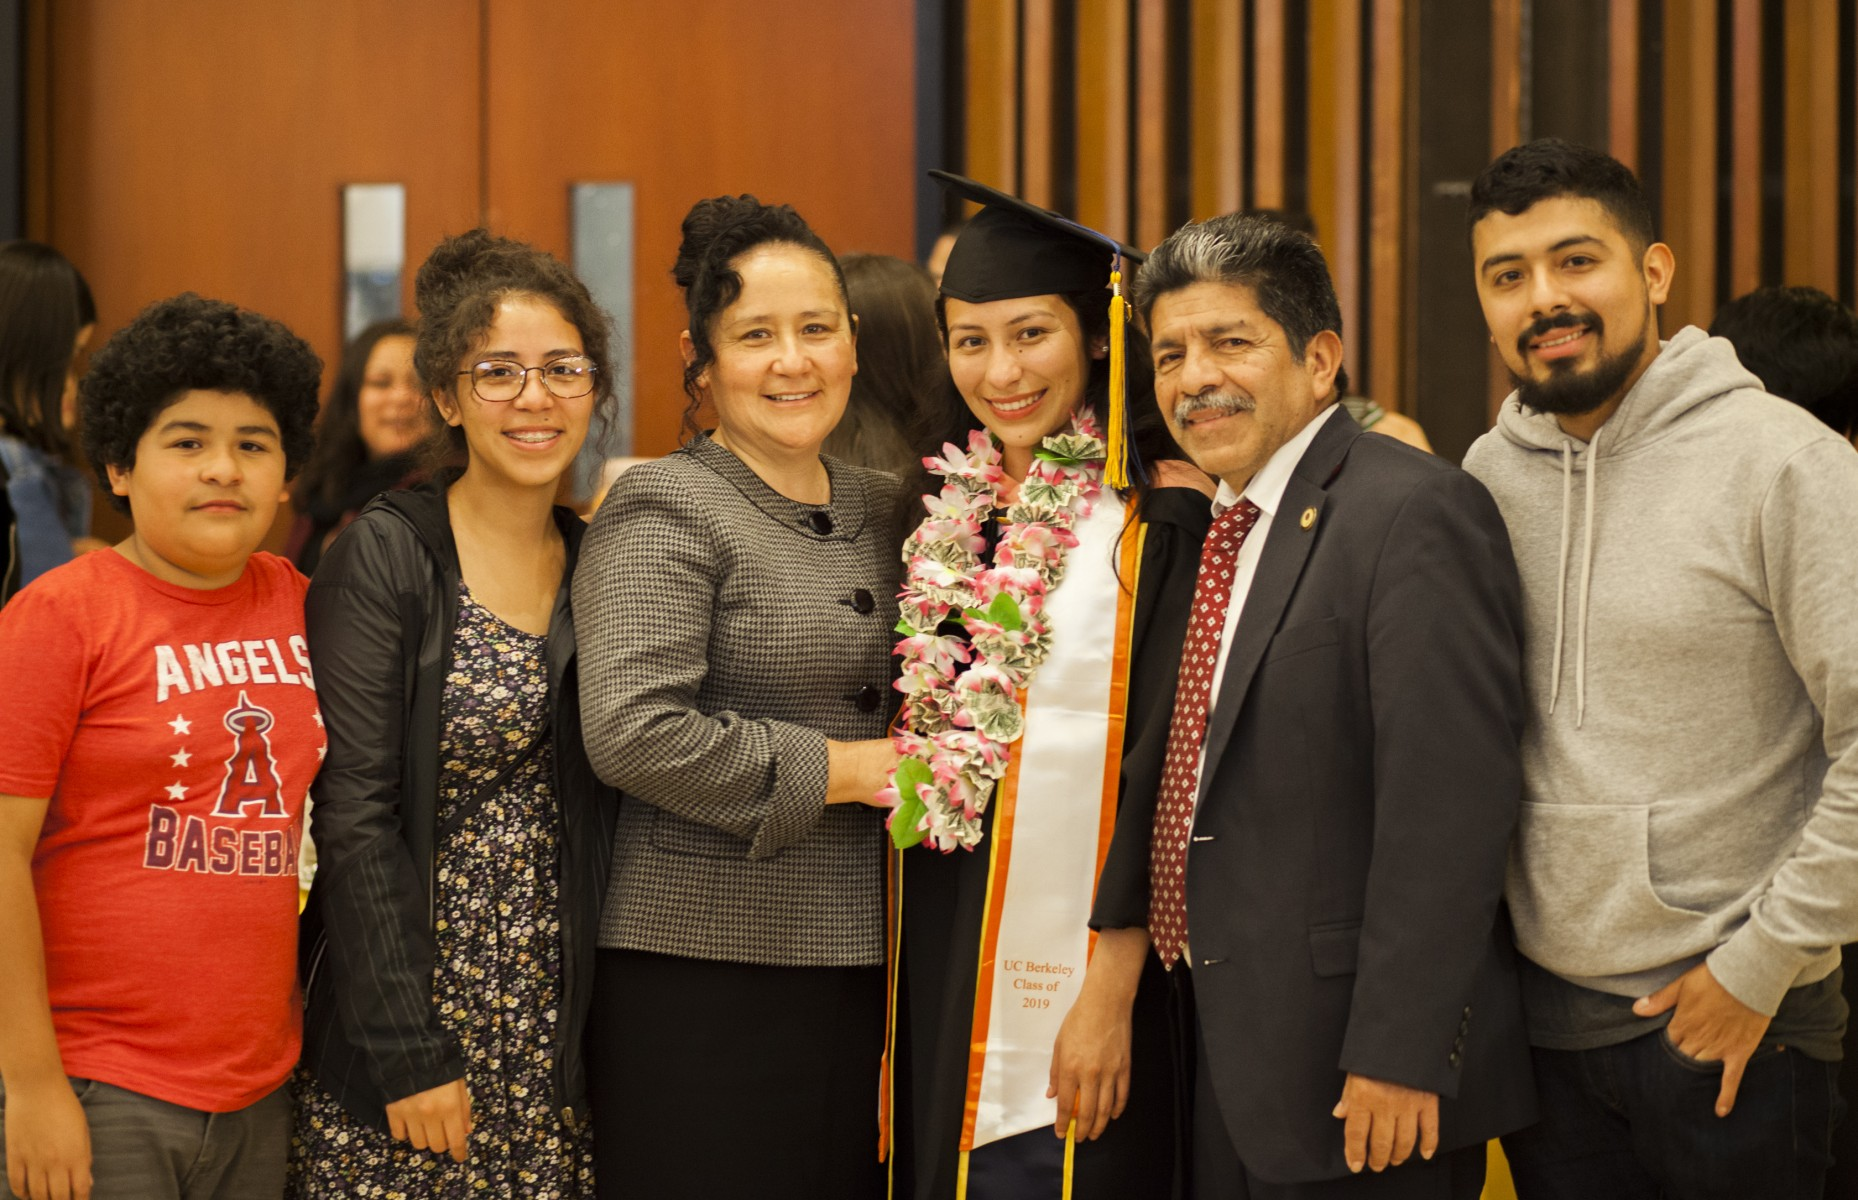 Amiel Maldonado, who earned her bachelor's at CSUSM in 2017, celebrates with family members at UC Berkeley's Dreamers graduation ceremony last spring. Maldonado earned her master's in public health from Berkeley.